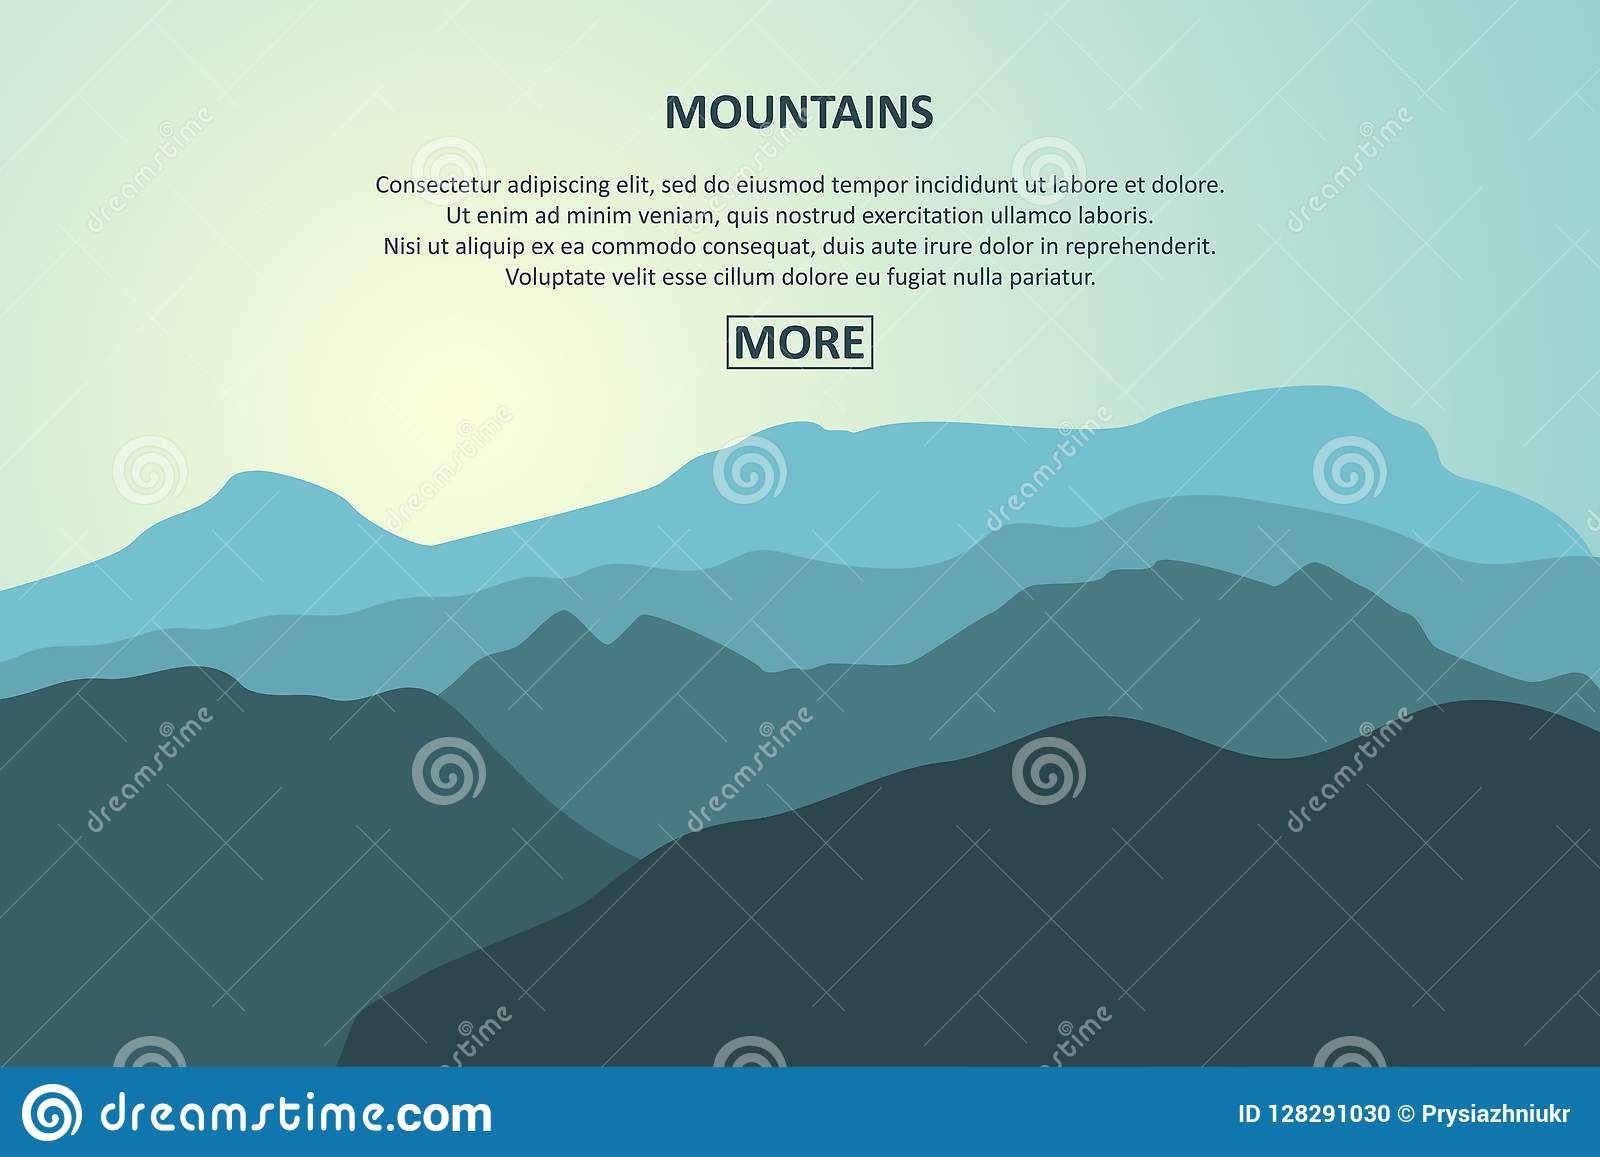 mountains landscape banner mountain journey tourism concept